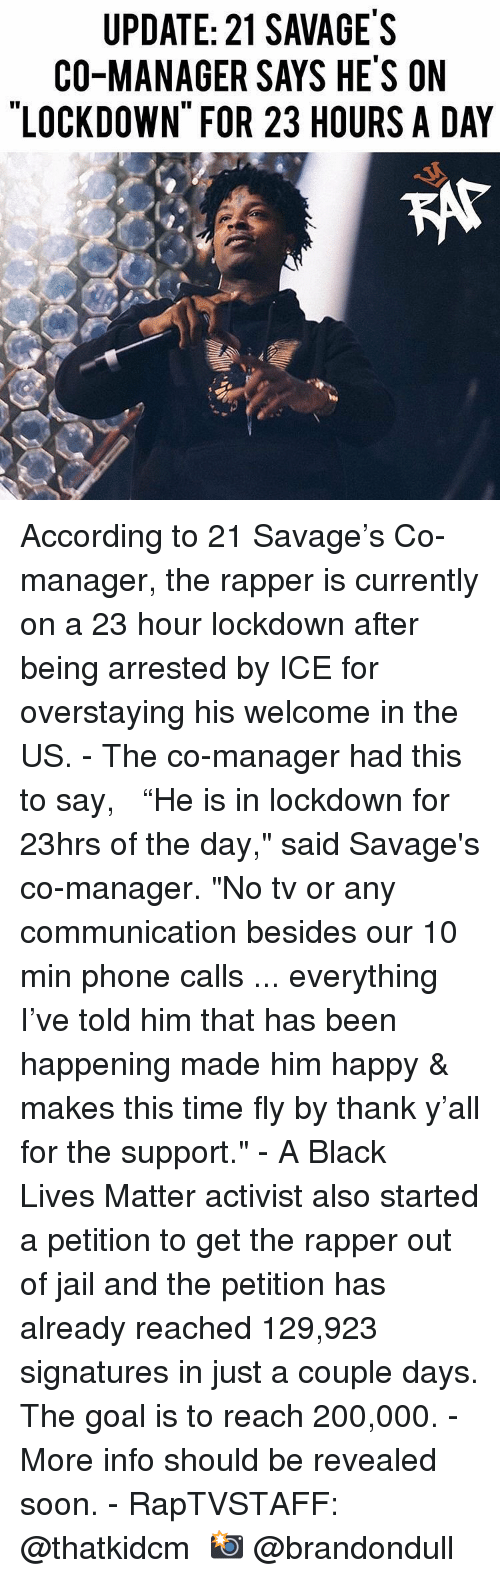 """Black Lives Matter: UPDATE: 21 SAVAGE'S  CO-MANAGER SAYS HE'S ON  LOCKDOWN FOR 23 HOURS A DAY  KAt According to 21 Savage's Co-manager, the rapper is currently on a 23 hour lockdown after being arrested by ICE for overstaying his welcome in the US. - The co-manager had this to say,   """"He is in lockdown for 23hrs of the day,"""" said Savage's co-manager. """"No tv or any communication besides our 10 min phone calls ... everything I've told him that has been happening made him happy & makes this time fly by thank y'all for the support."""" - A Black Lives Matter activist also started a petition to get the rapper out of jail and the petition has already reached 129,923 signatures in just a couple days. The goal is to reach 200,000. - More info should be revealed soon. - RapTVSTAFF: @thatkidcm 📸 @brandondull"""